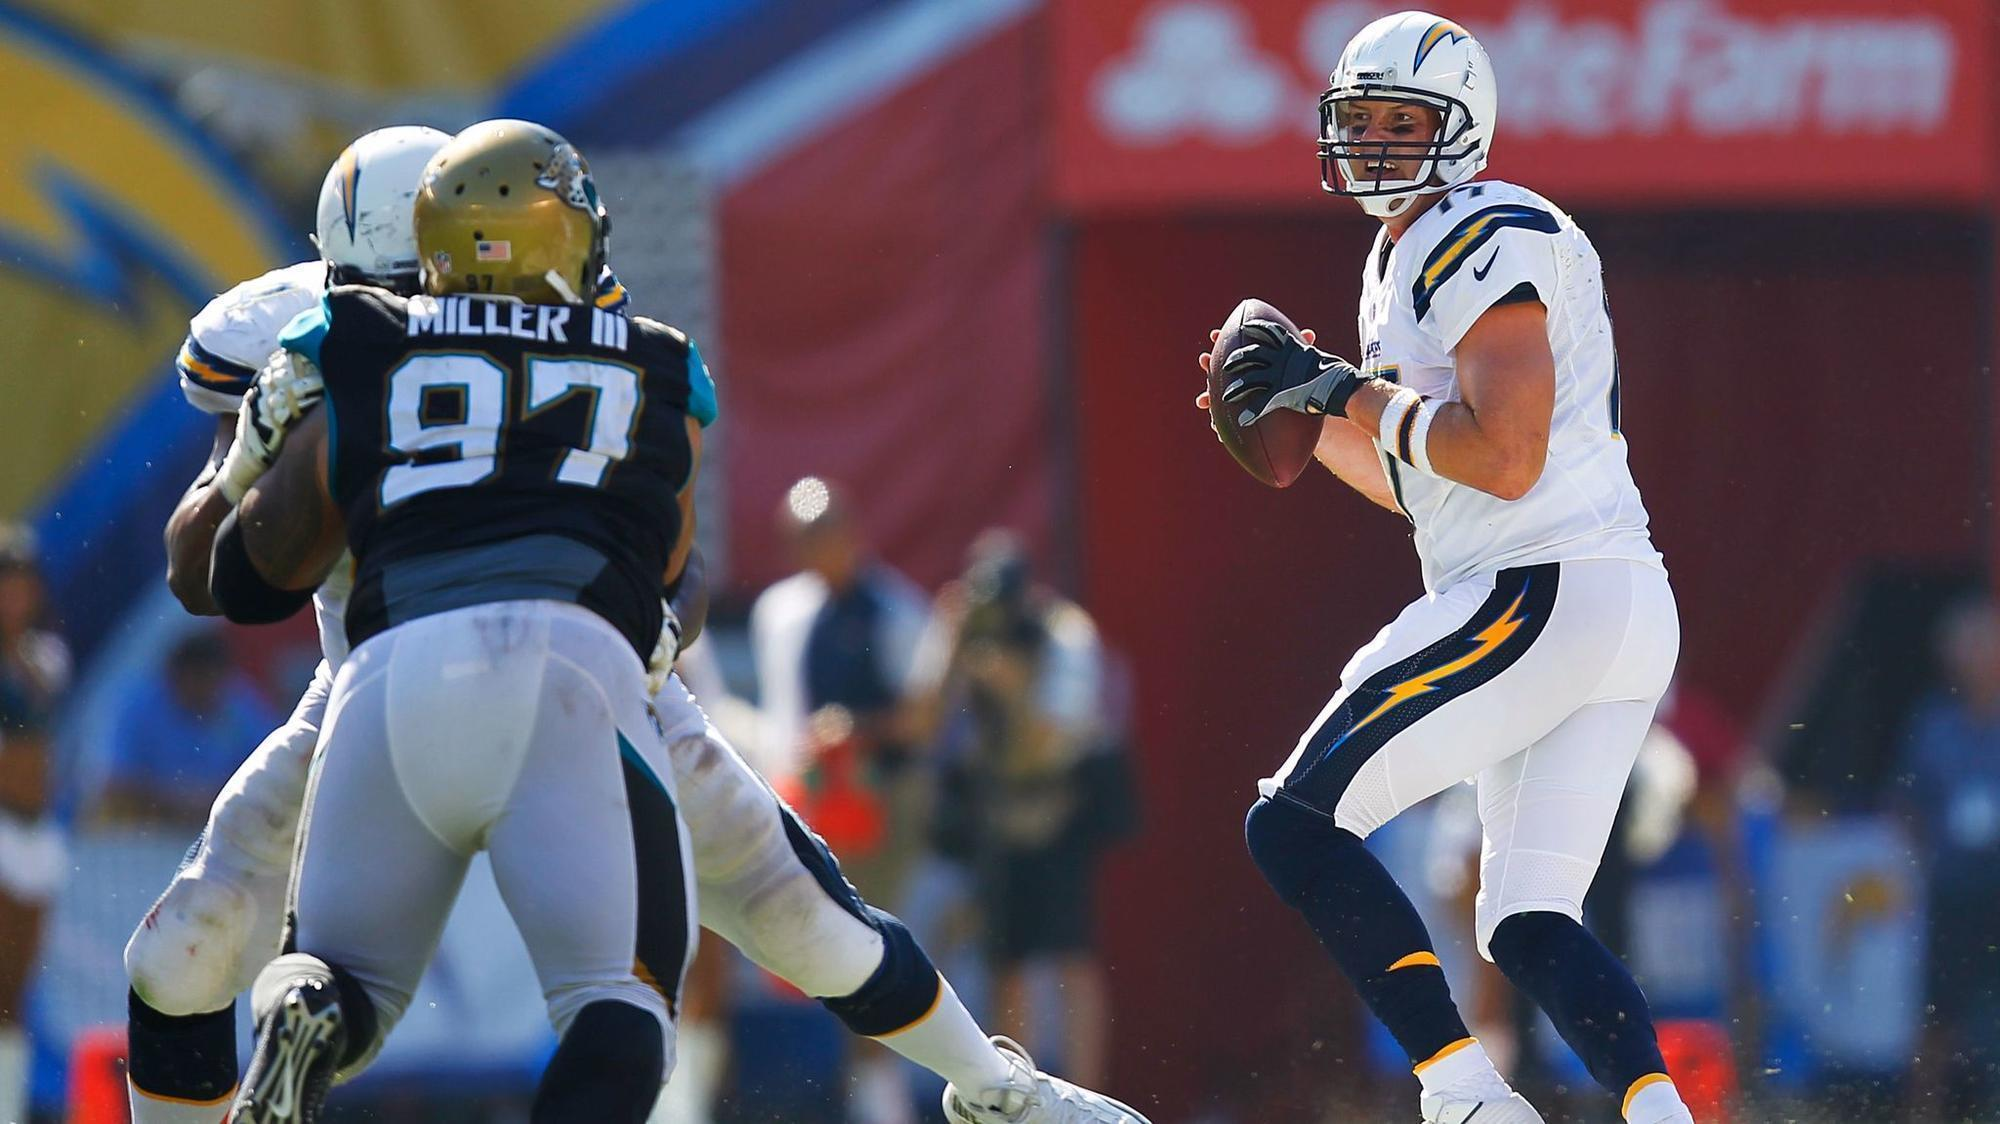 Philip Rivers on facing the Jaguars defense